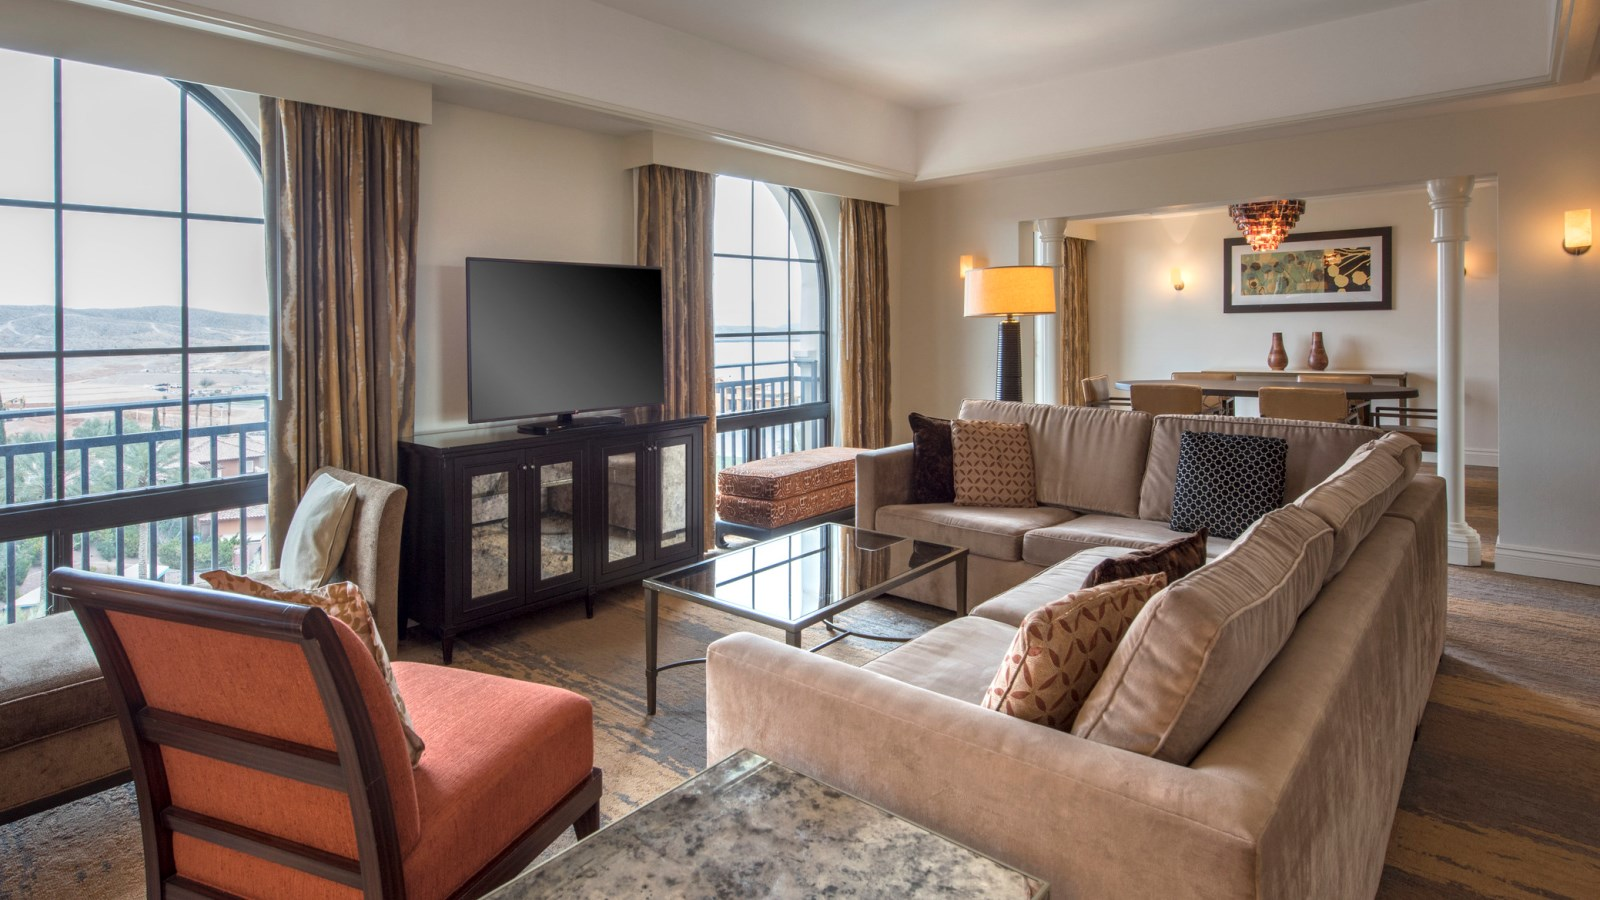 lake las vegas hotels - Presidential Suites